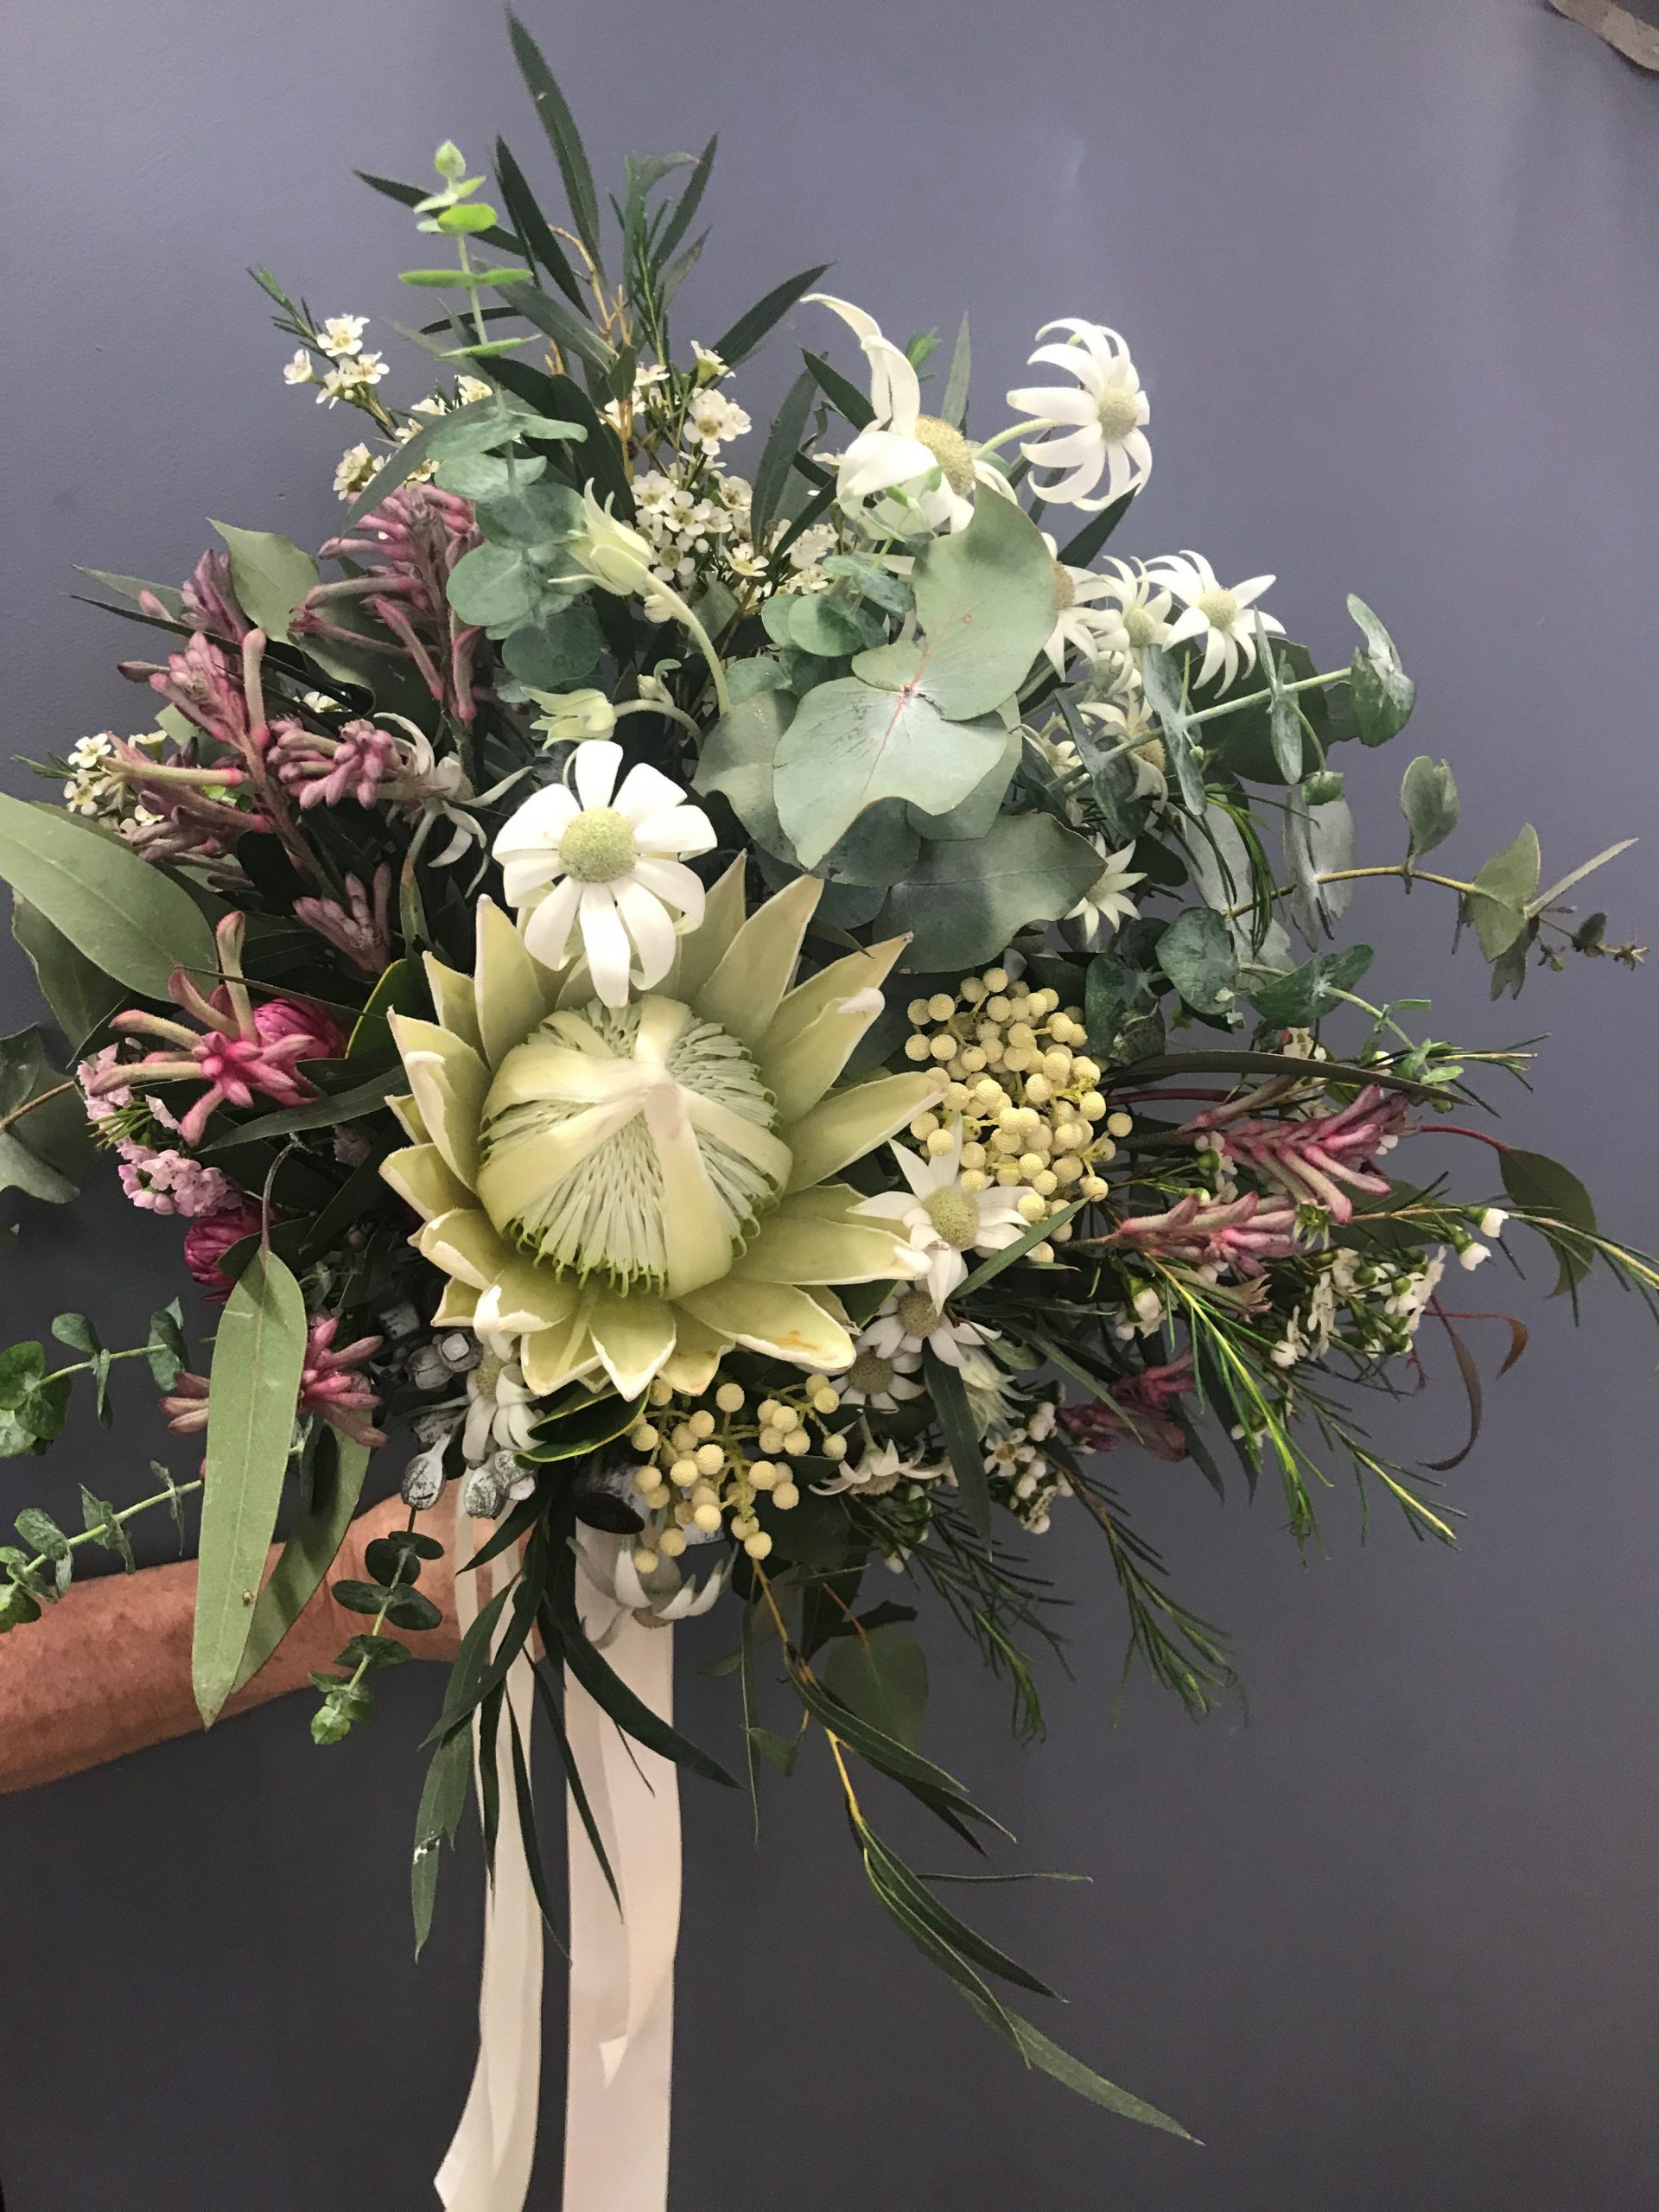 native bouquet, native wedding flowers, rustic wedding bouquet, tamworth wedding, wedding bouquet, bridal bouquet tamworth, tamworth weddings, tamworth florist, florist tamworth, tamworth wedding florist, pastel native bouquet